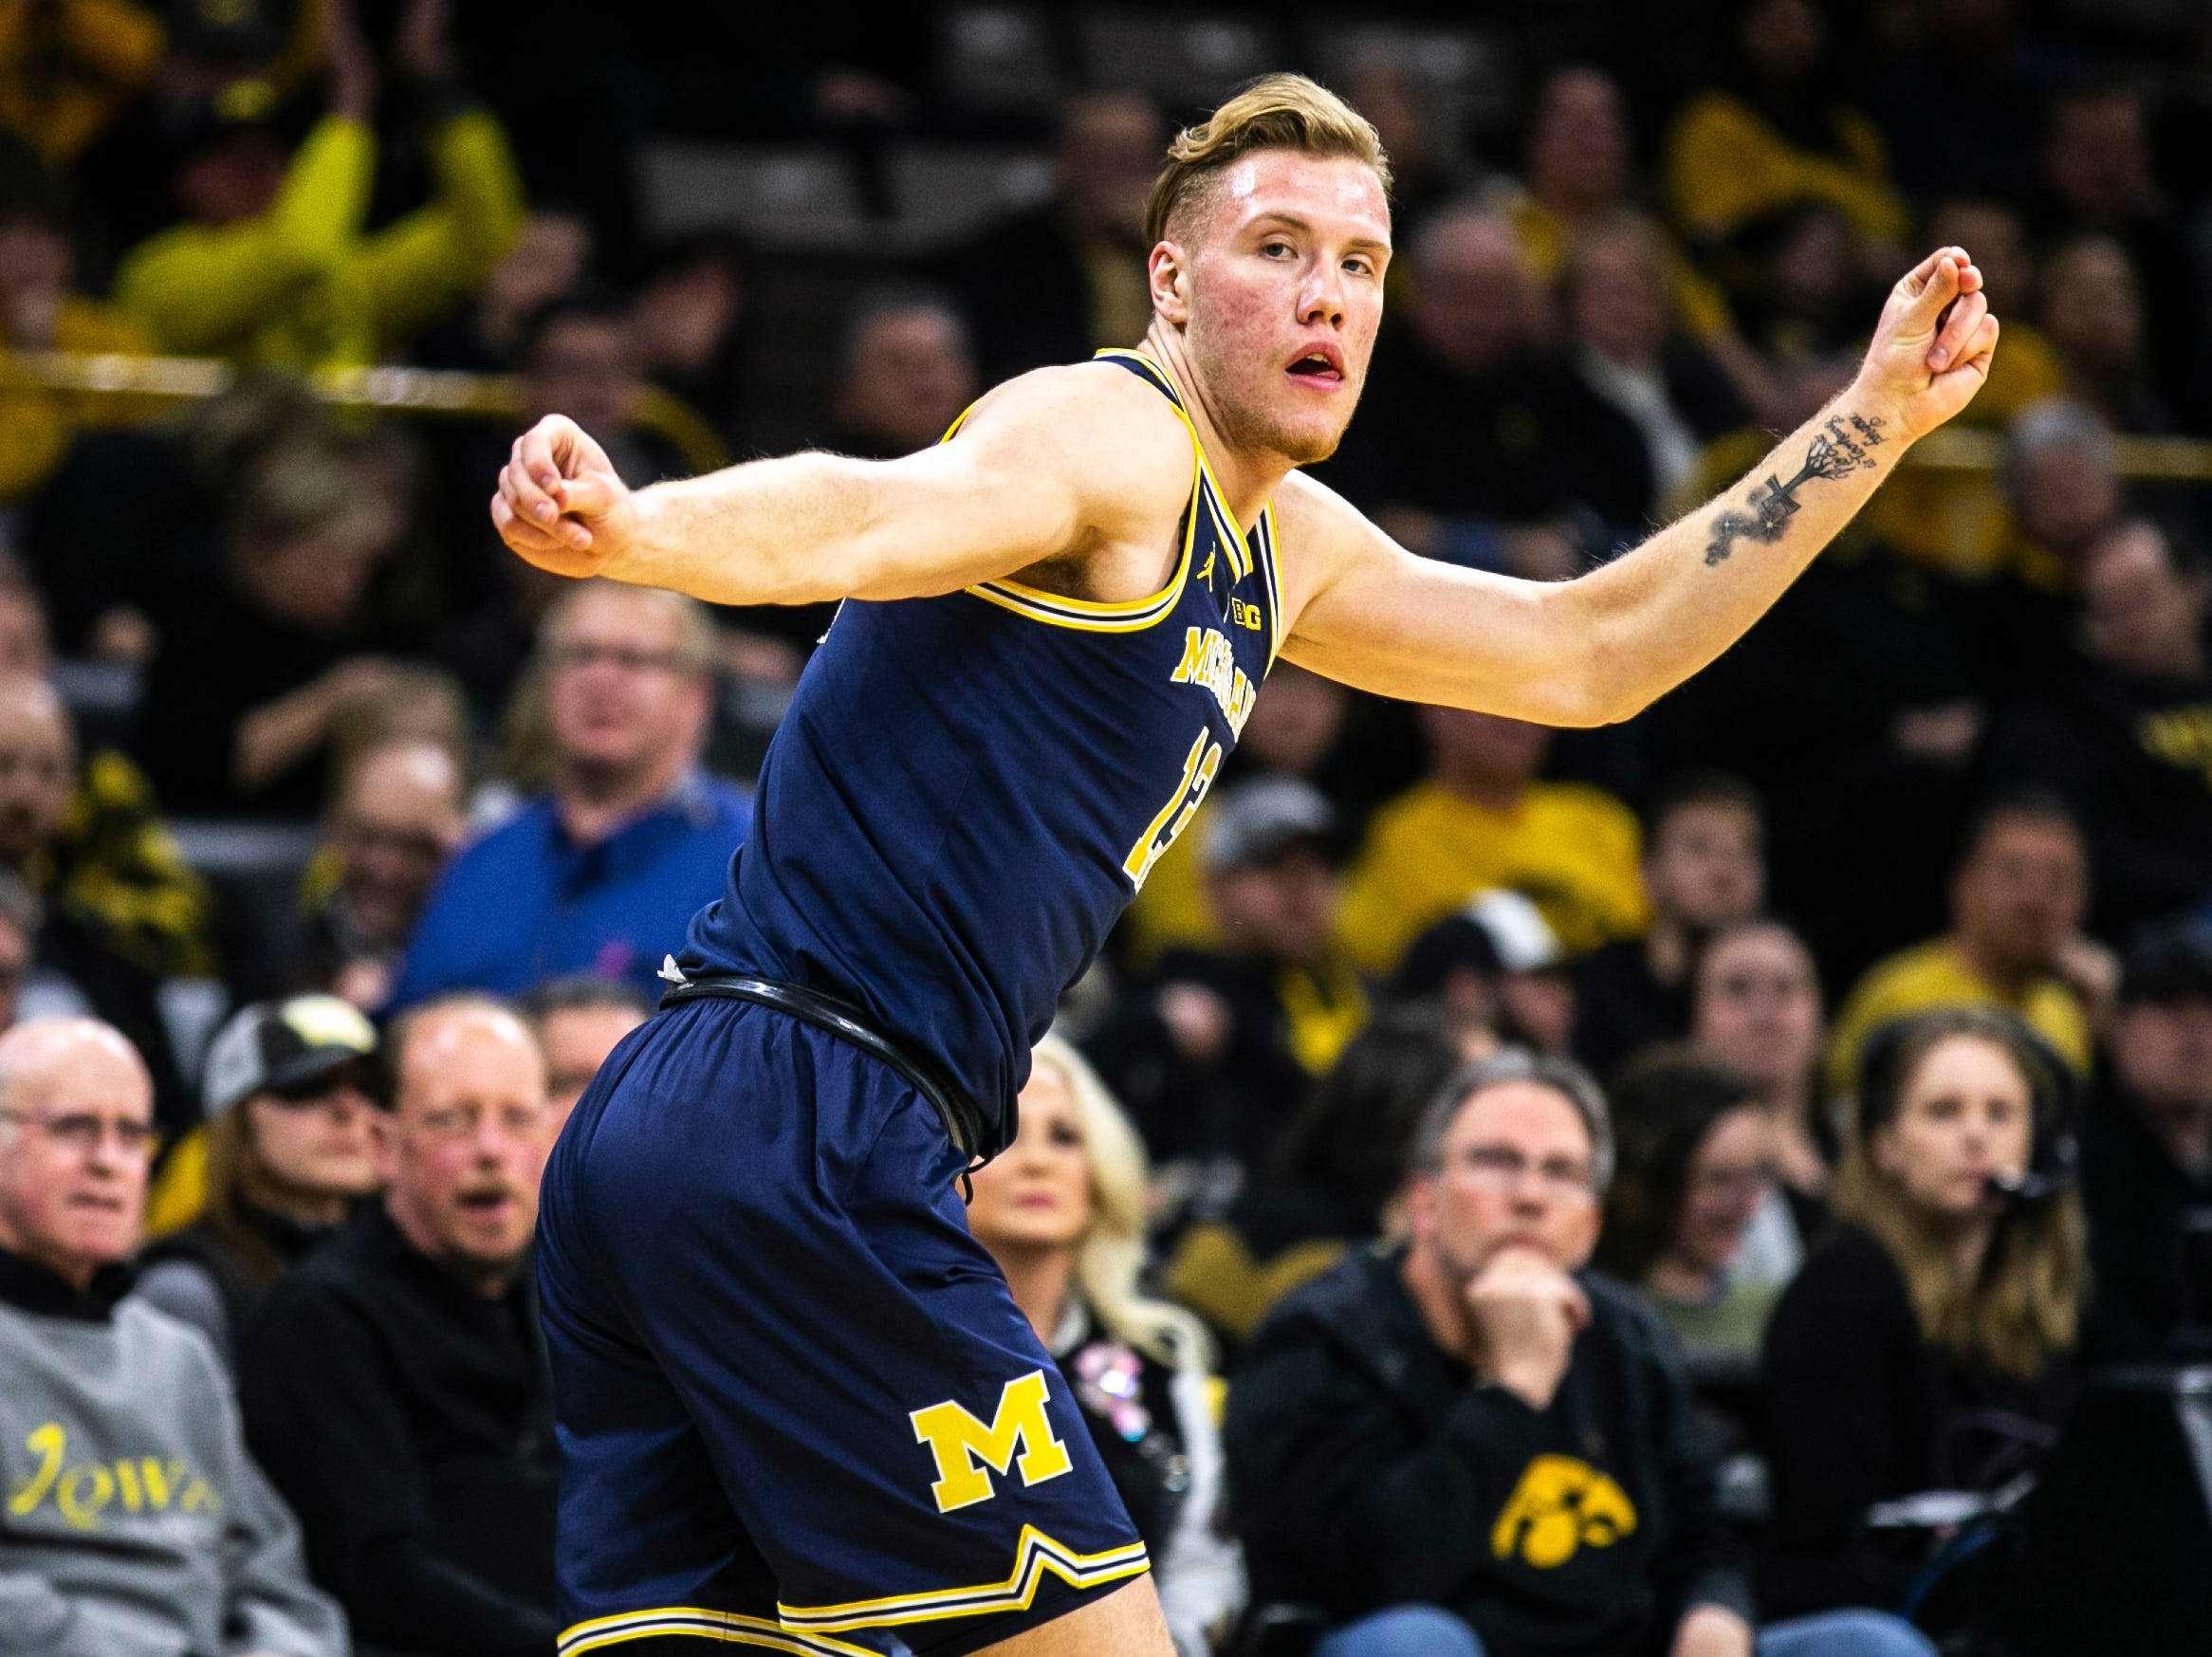 Michigan forward Ignas Brazdeikis (13) runs up court during a NCAA Big Ten Conference men's basketball game on Friday, Feb. 1, 2019, at Carver-Hawkeye Arena in Iowa City, Iowa.